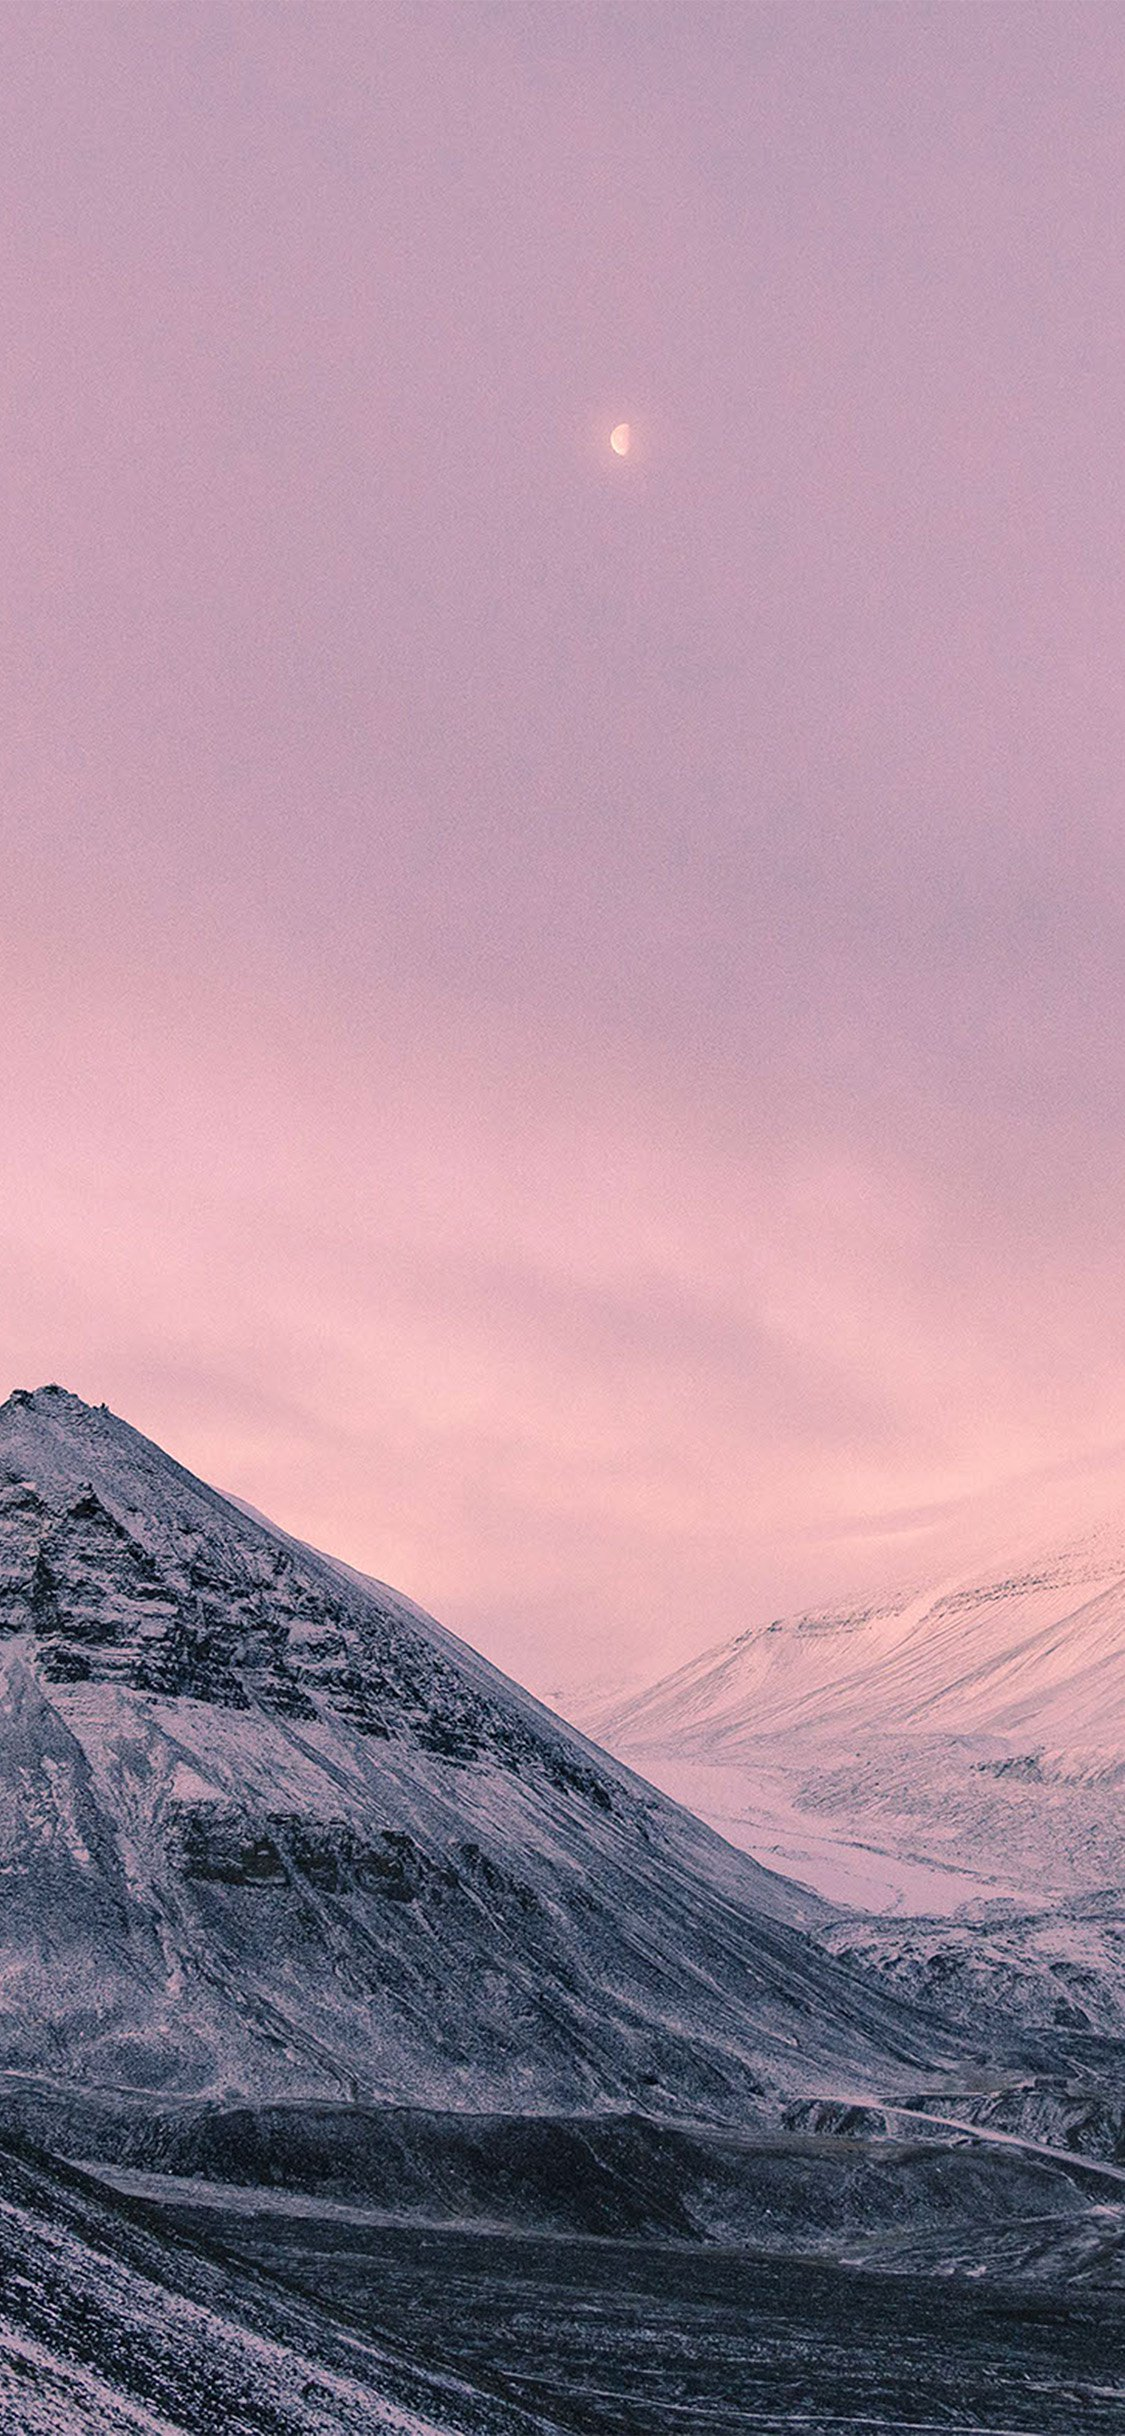 snow mountains pink moon iphone wallpaper